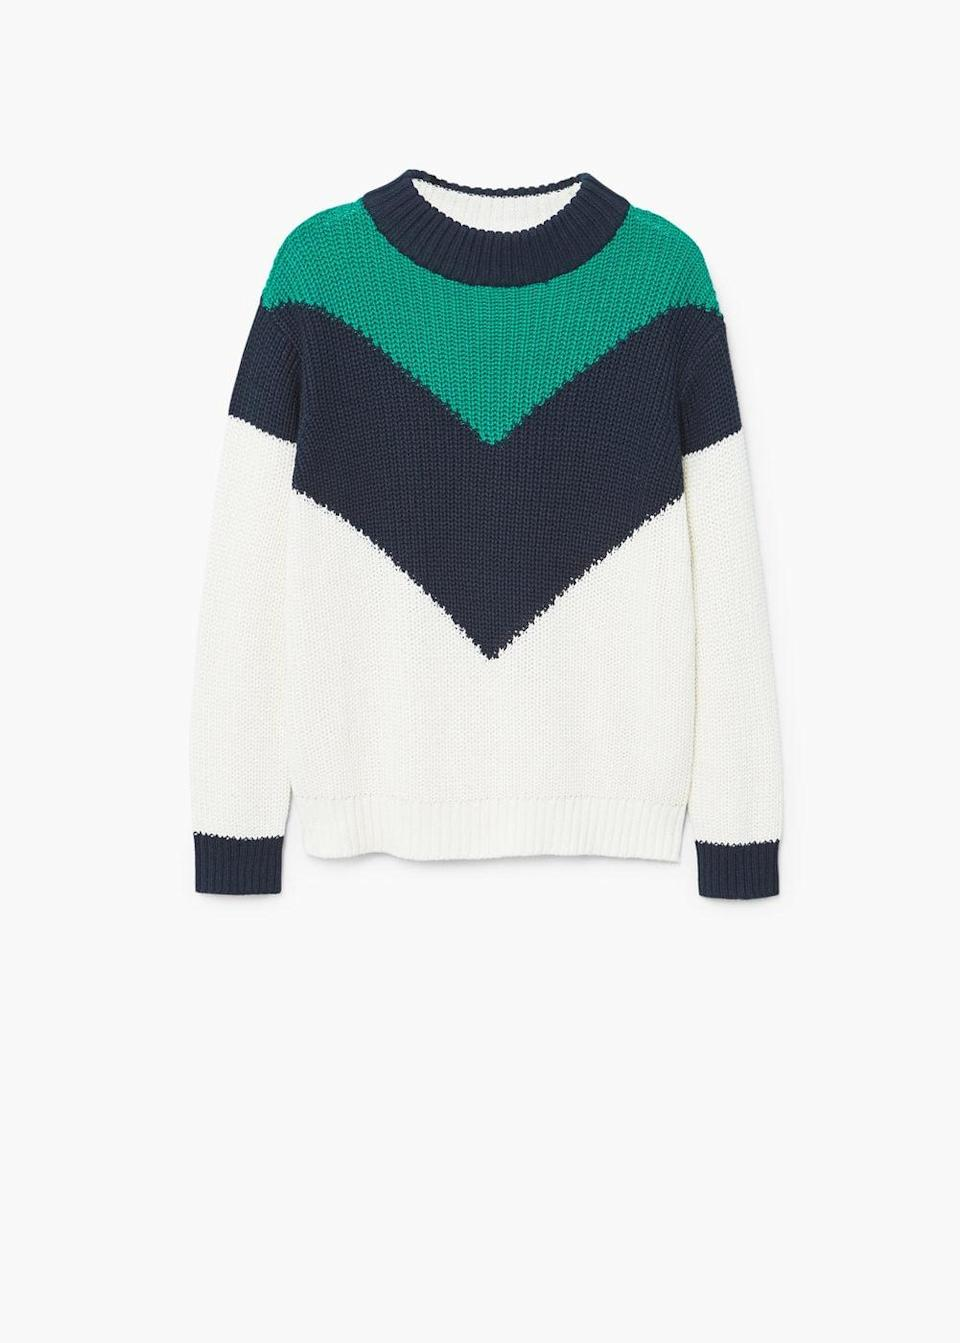 """<p>The go-to look for street style experts? A statement knit, boyfriend jeans and kitten heels. Yes, for an effortless look this season shop Mango's latest drop.<br><br><em><a rel=""""nofollow noopener"""" href=""""https://shop.mango.com/gb/women/cardigans-and-sweaters-sweaters/contrasting-knit-sweater_13005699.html?c=05&n=1&s=prendas.familia;55,355"""" target=""""_blank"""" data-ylk=""""slk:Mango"""" class=""""link rapid-noclick-resp"""">Mango</a>, £29.99</em> </p>"""